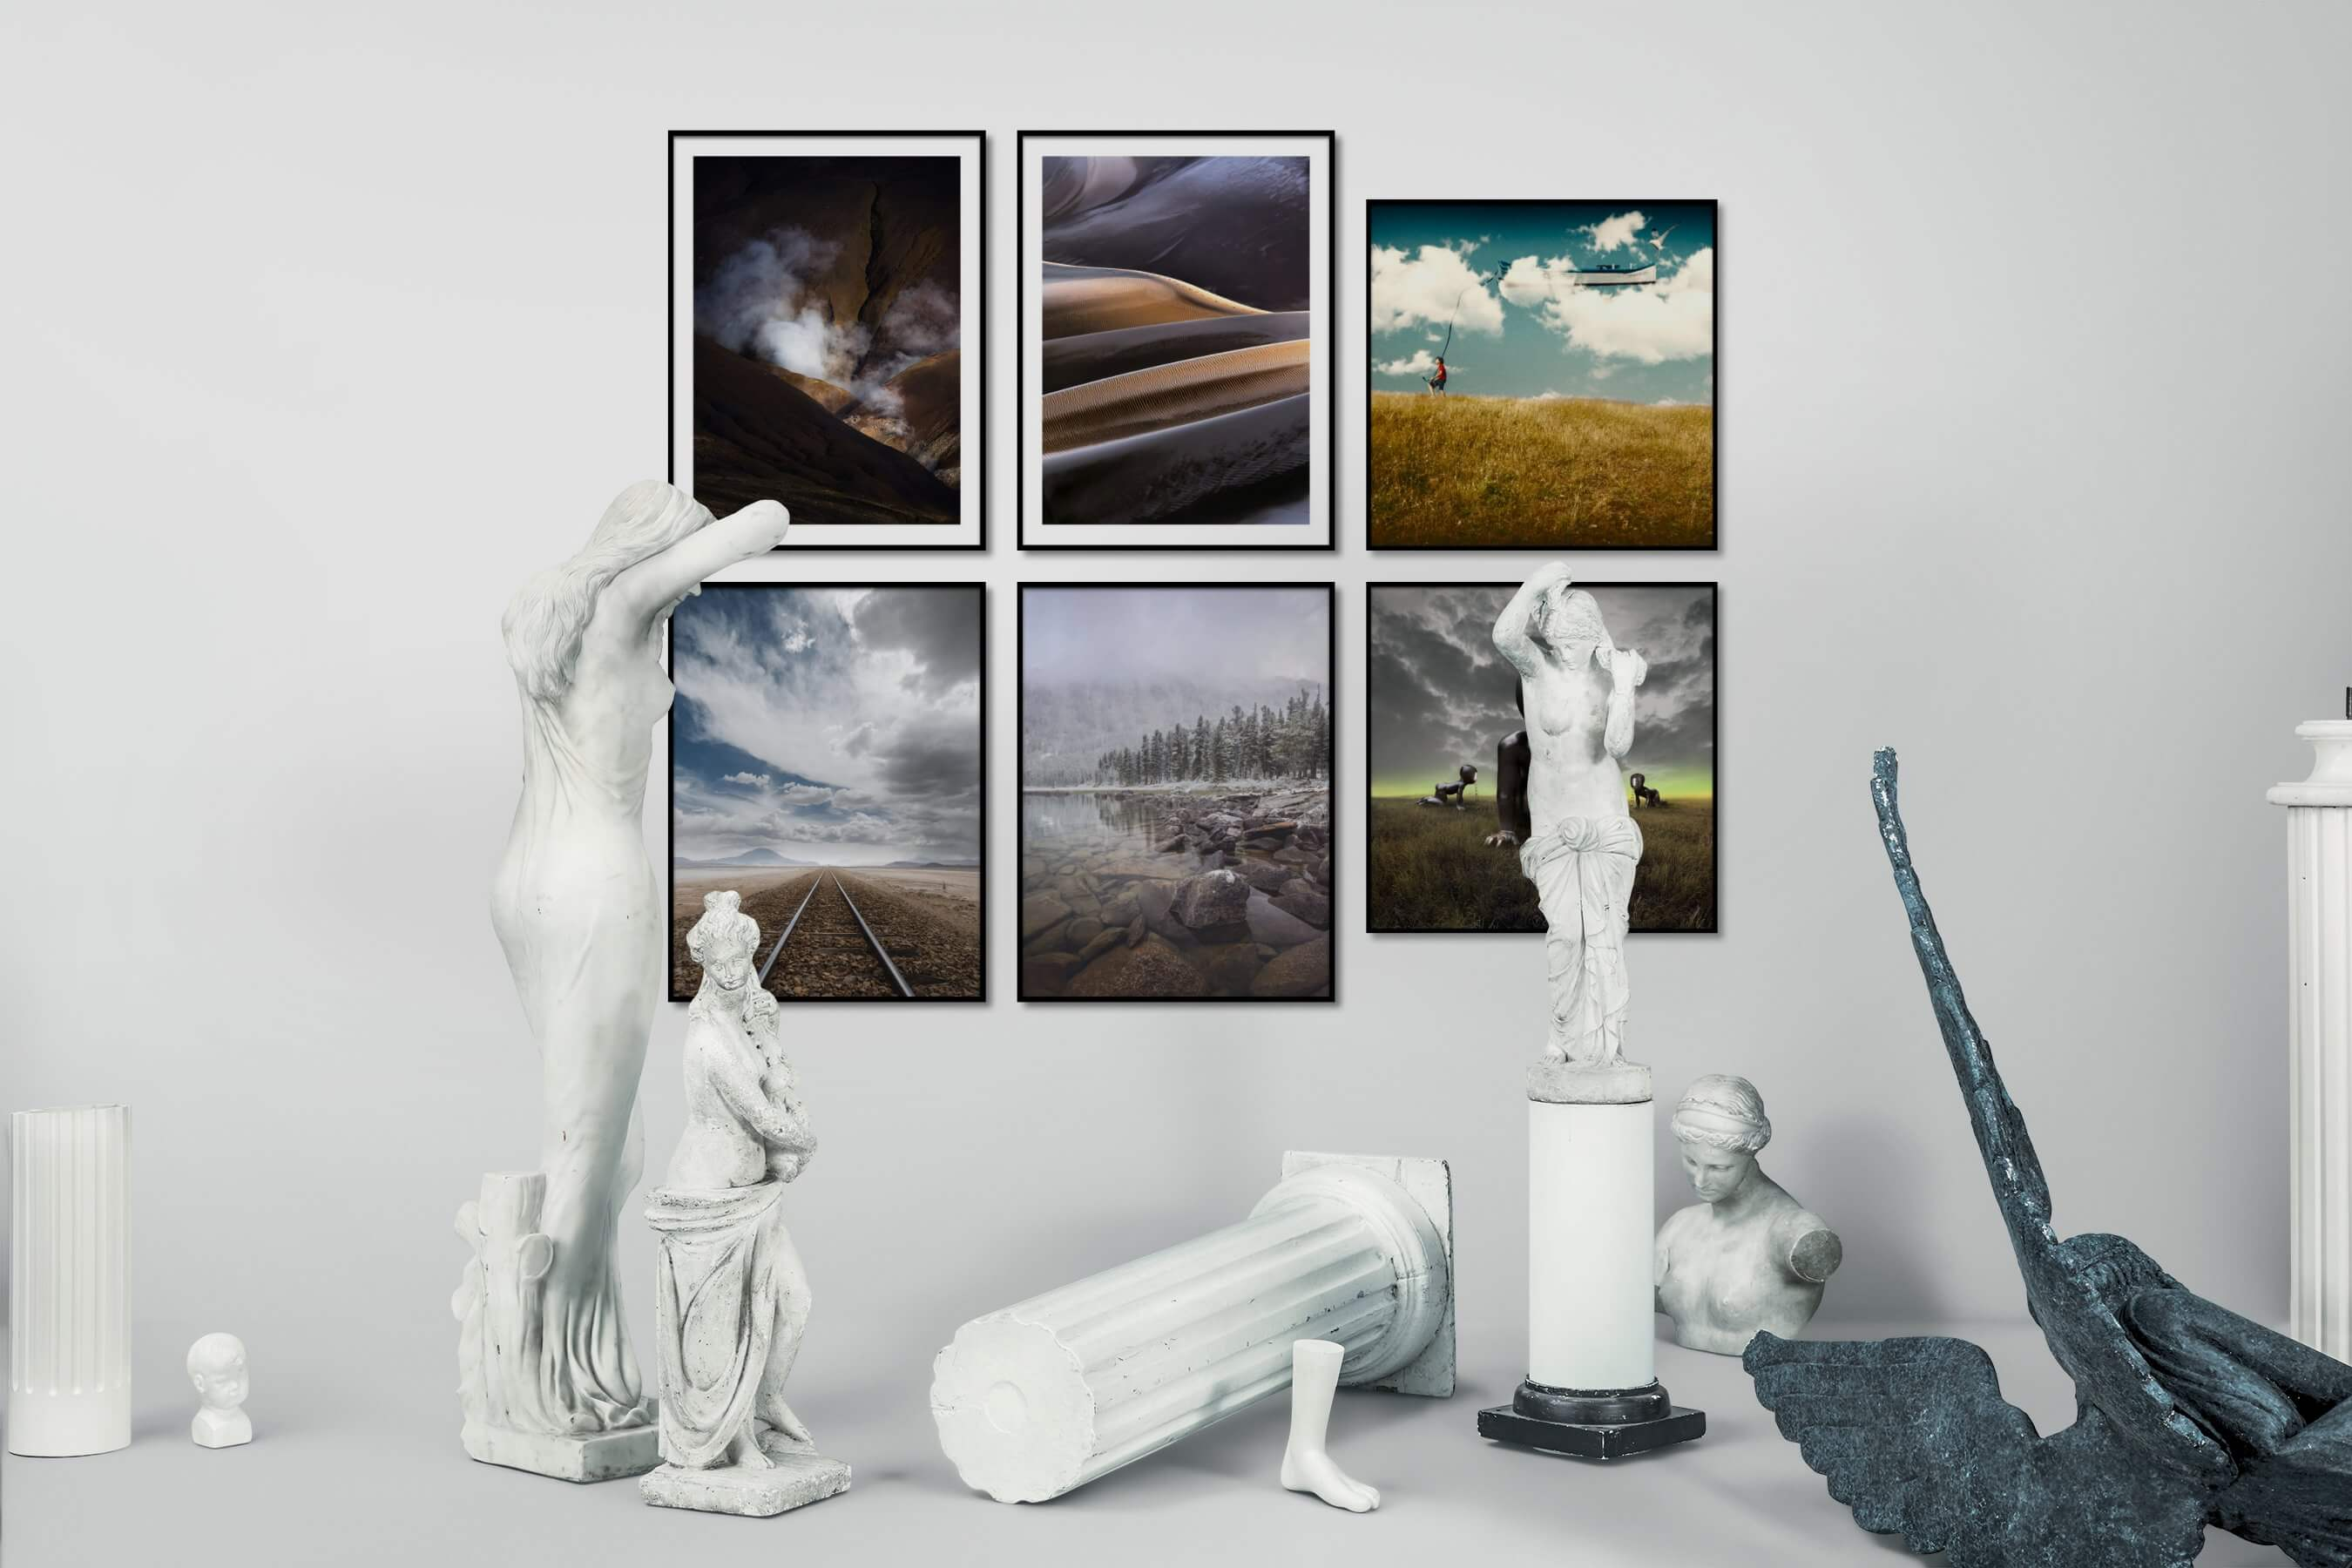 Gallery wall idea with six framed pictures arranged on a wall depicting Nature, For the Moderate, Country Life, Mindfulness, and Artsy